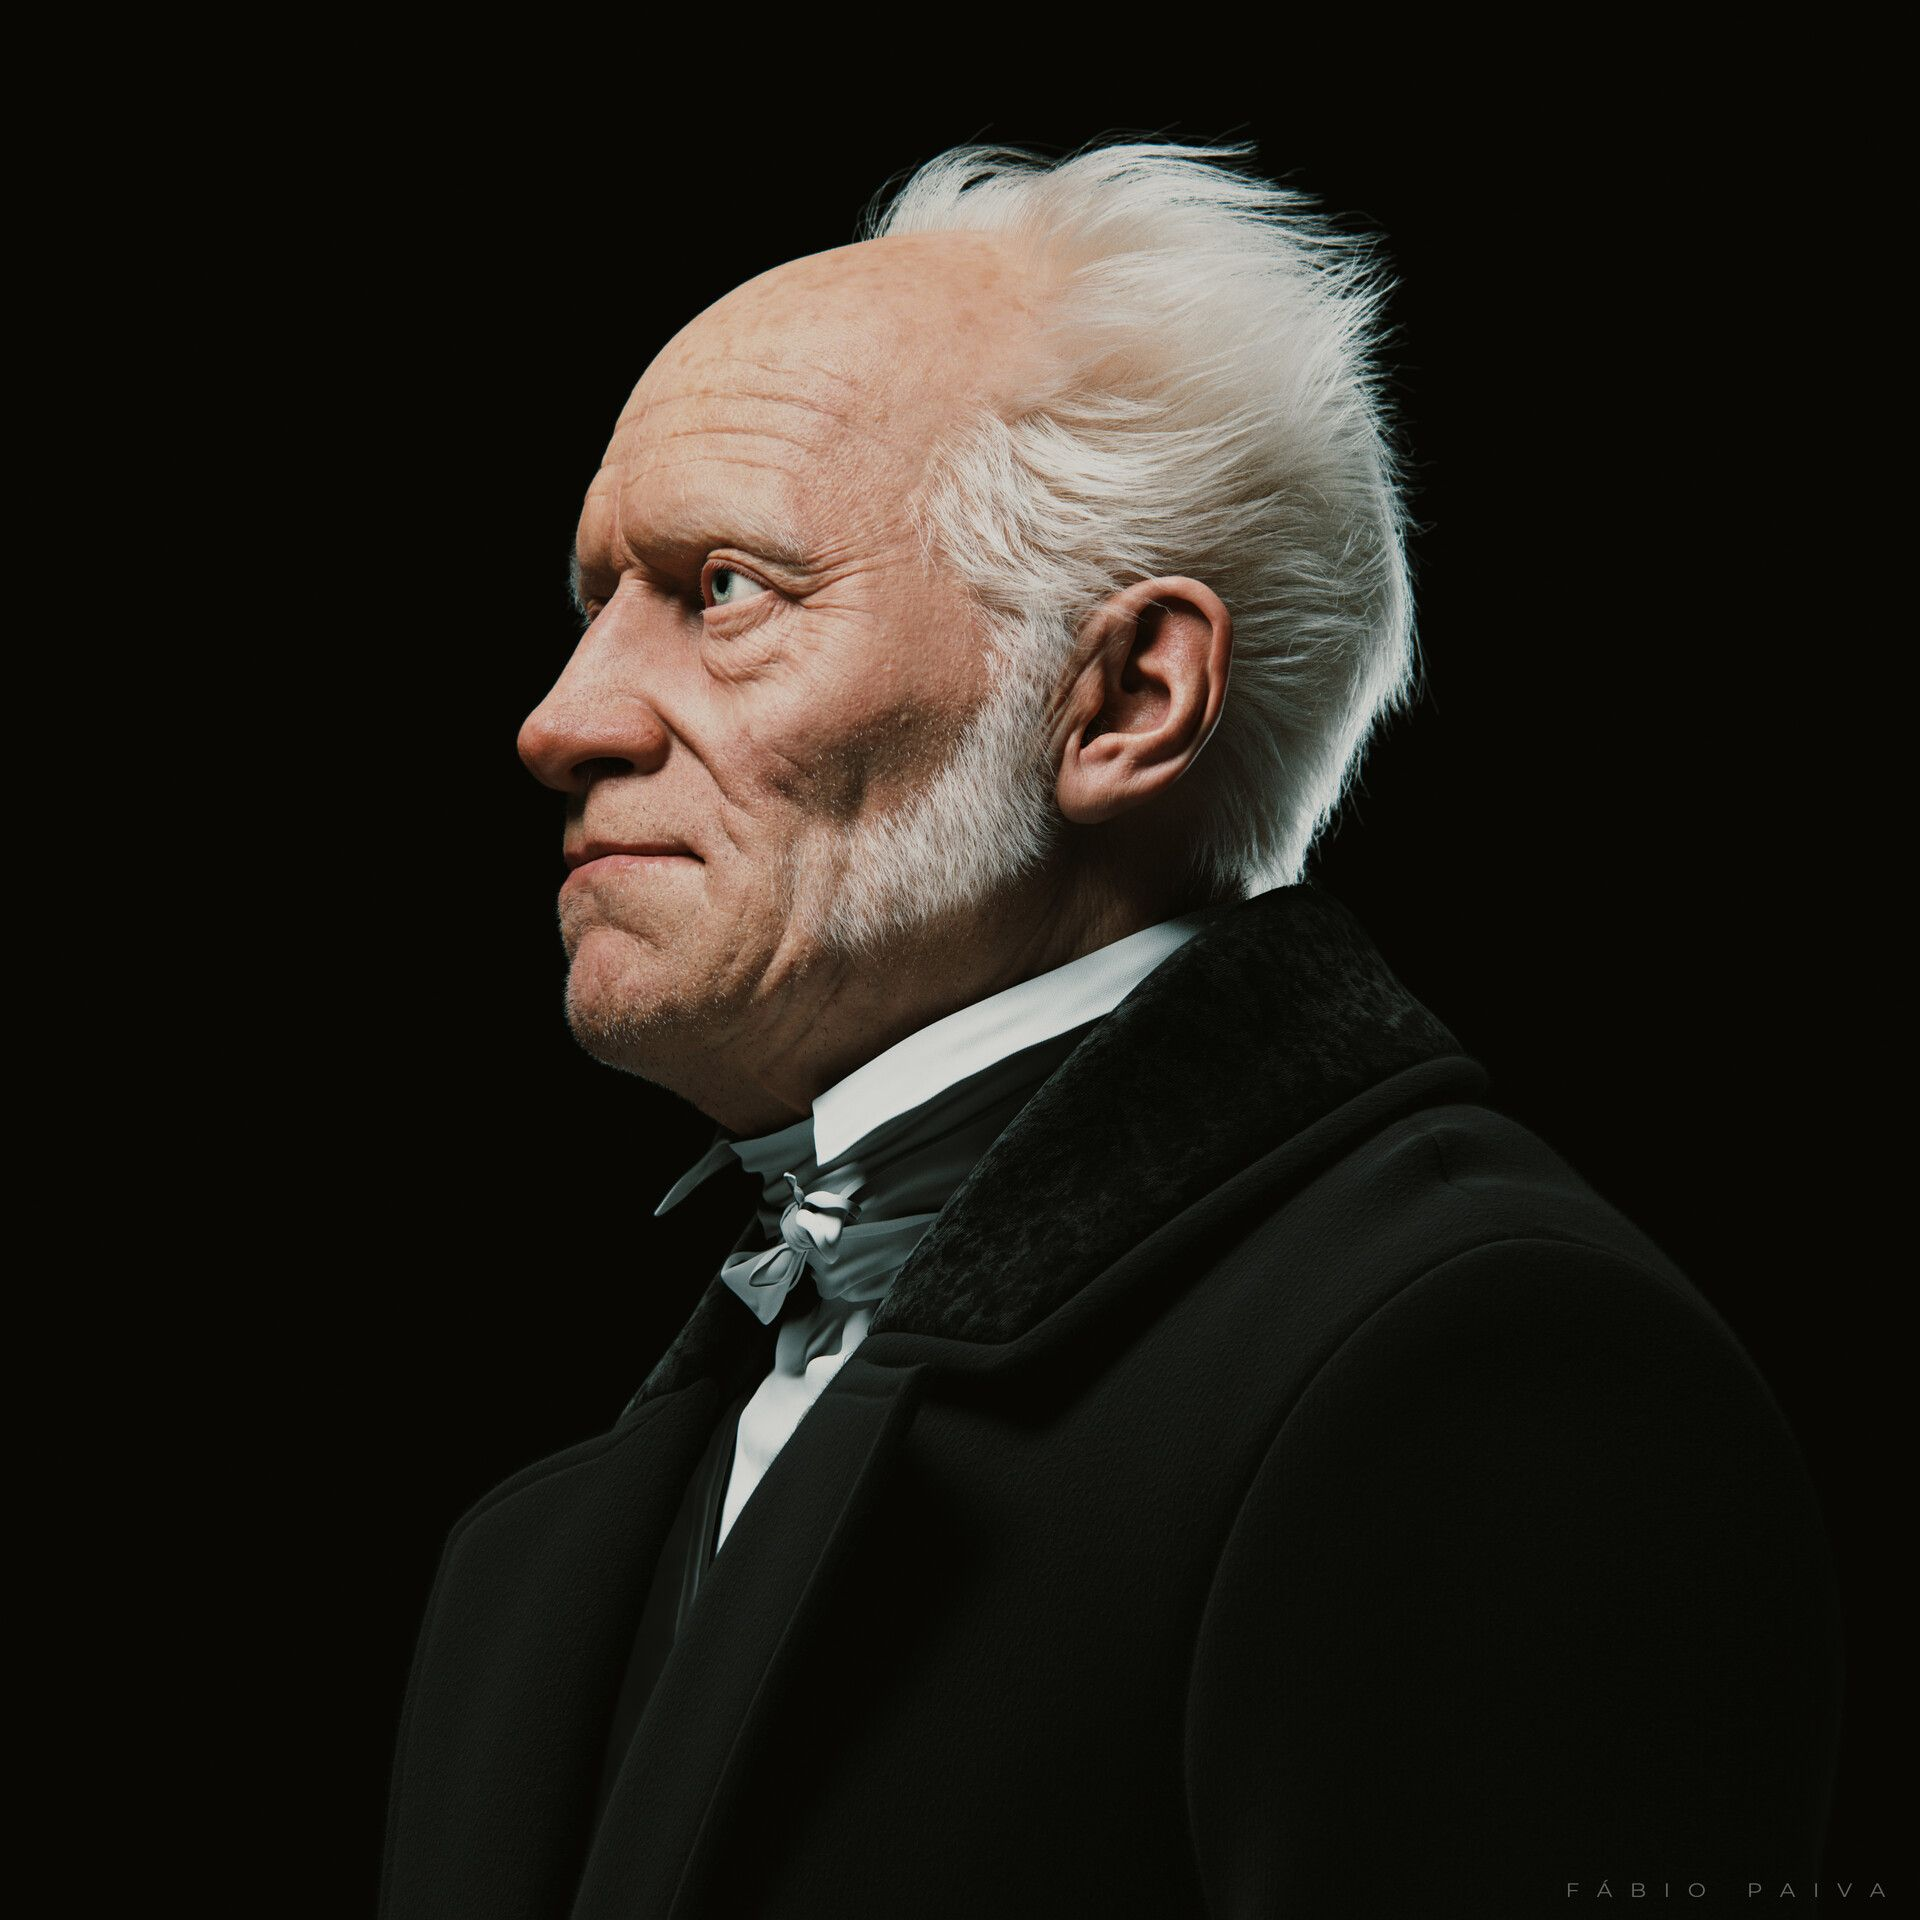 ArtStation - Arthur Schopenhauer - The Emptiness of Existence - Tribute,  Fabio Paiva | Arthur schopenhauer, Tribute, Famous scientist